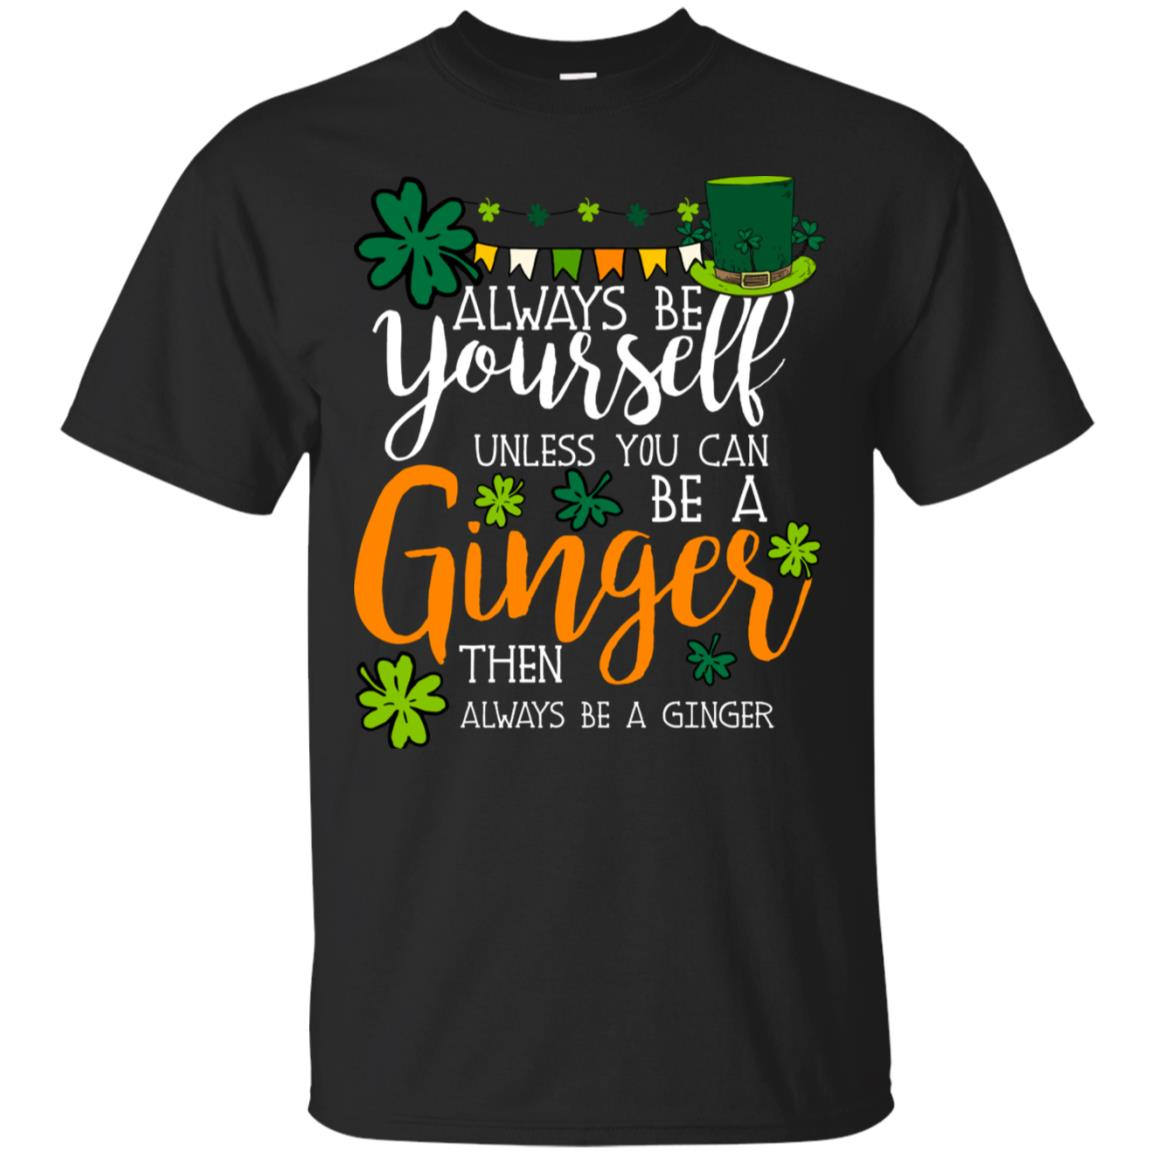 Unless You Can Be A Ginger Then Always Be A Ginger T-shirt 99promocode